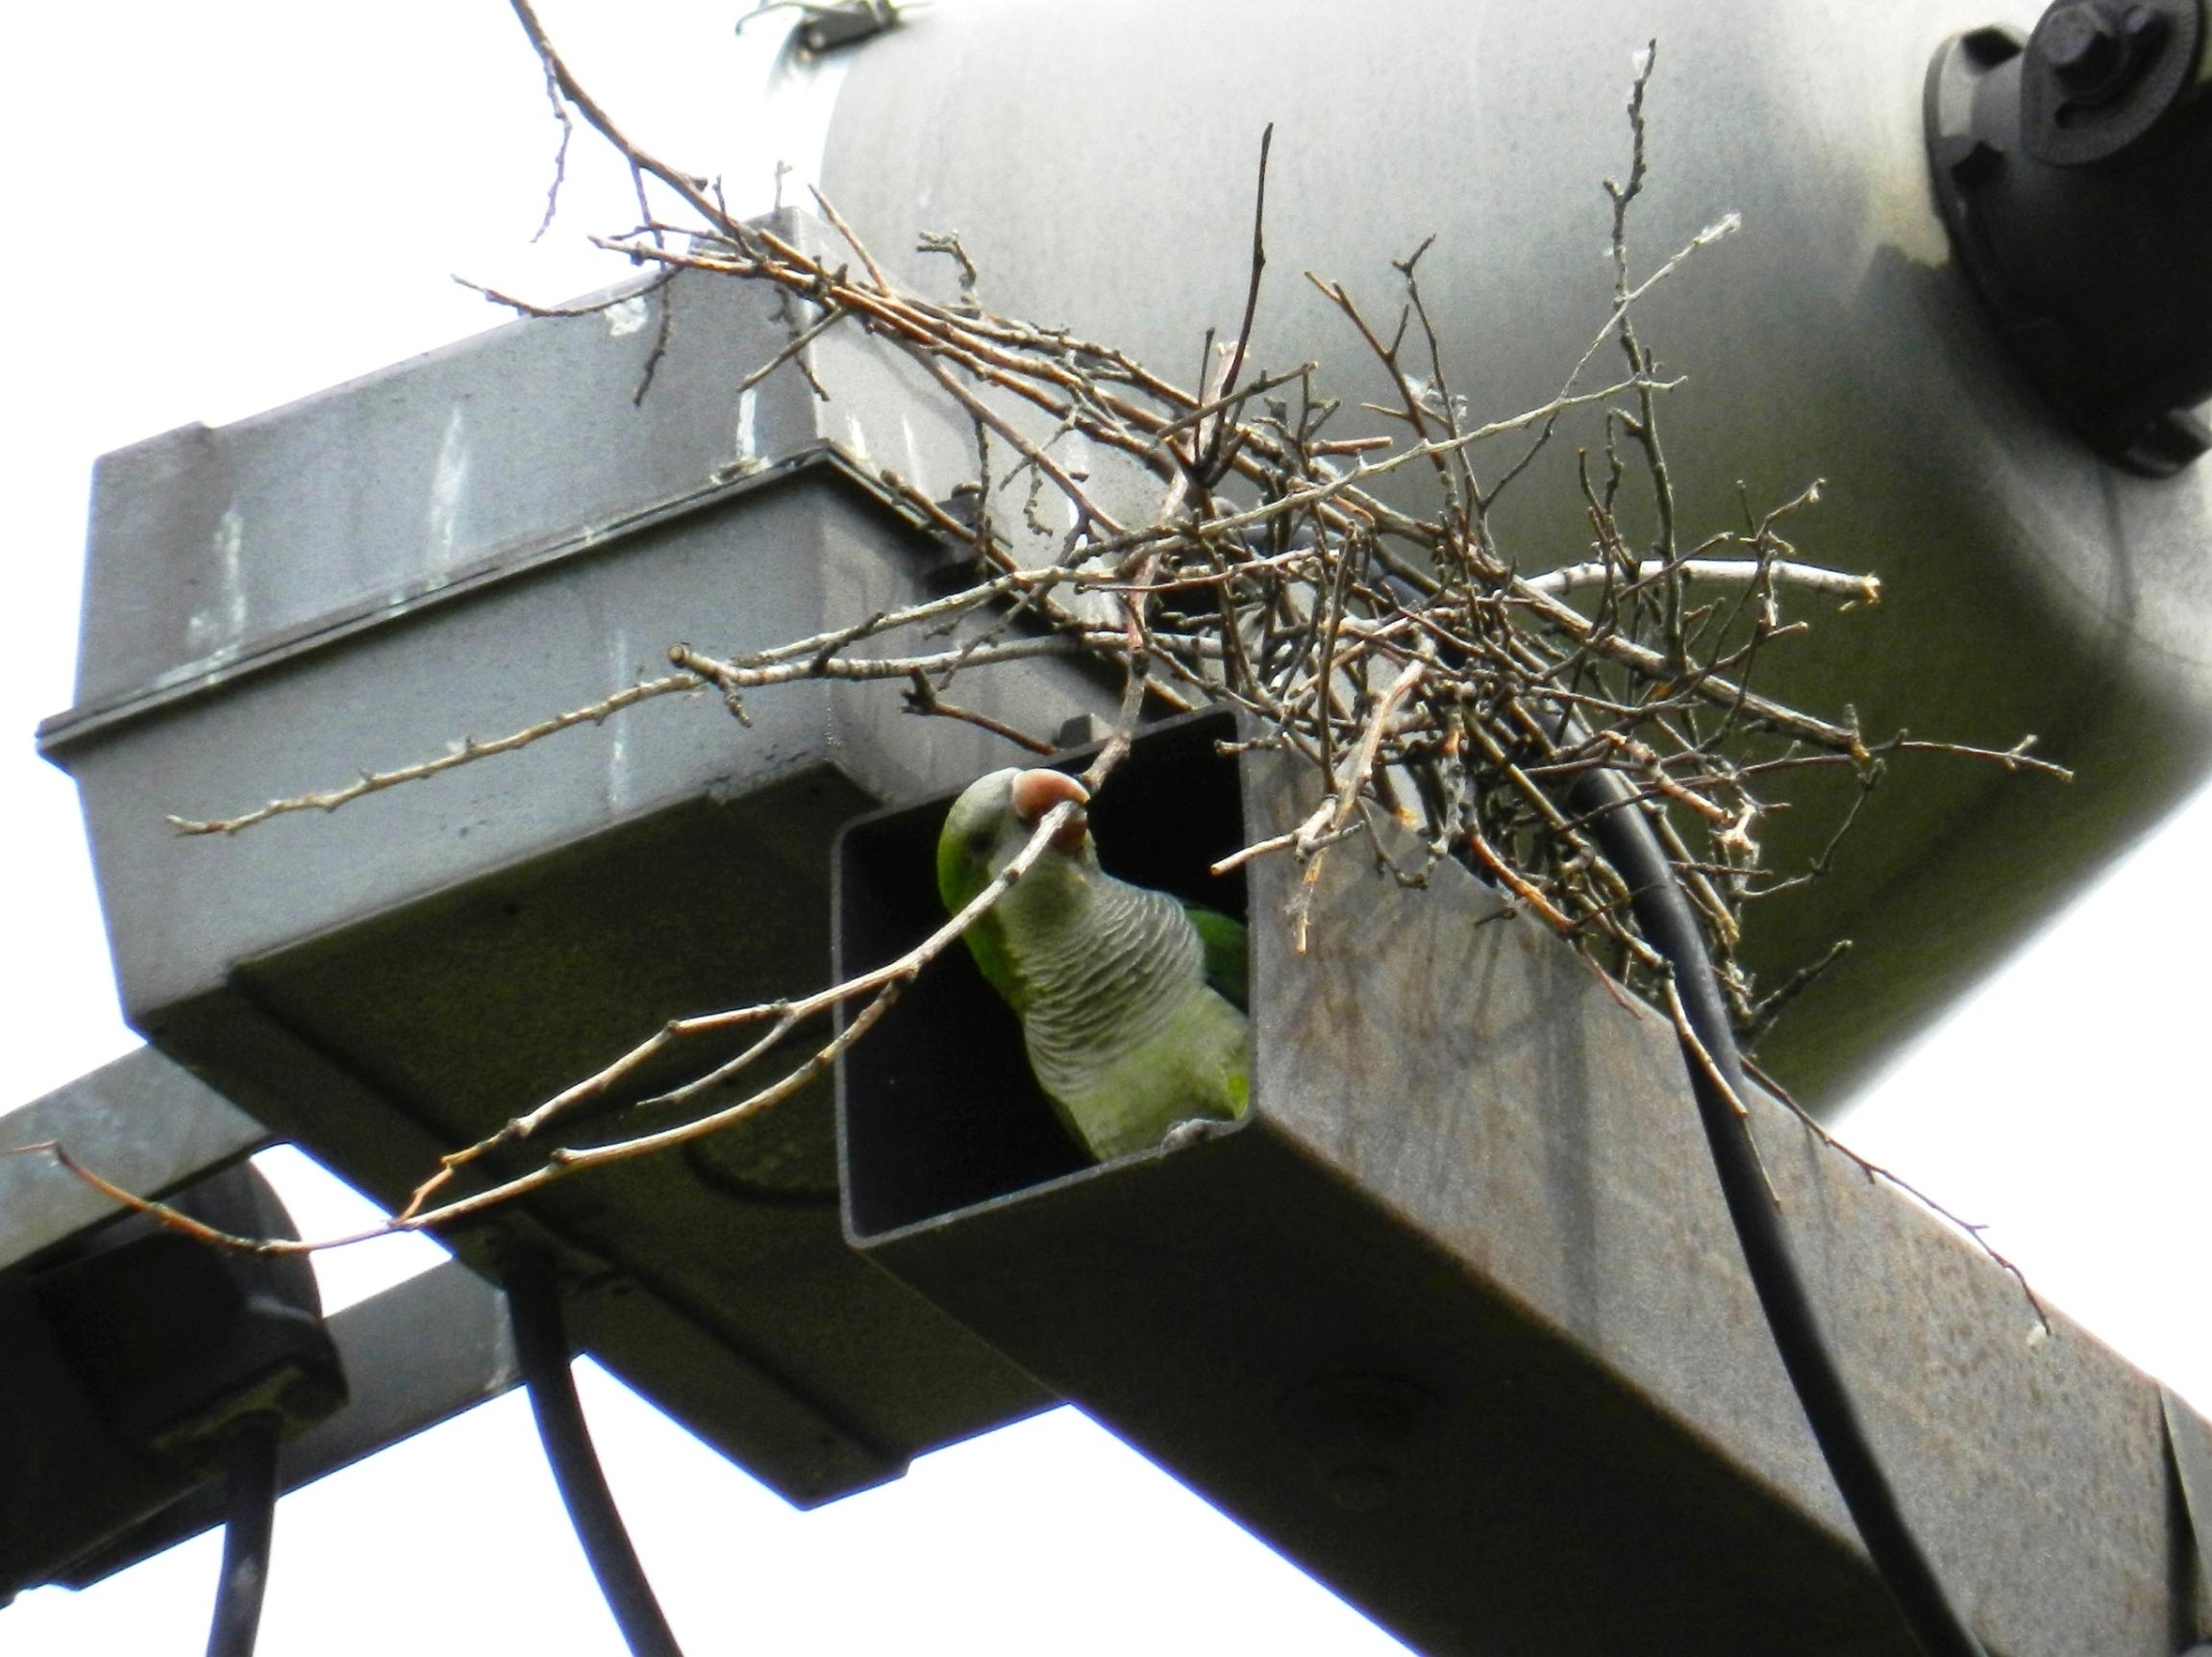 Monk parakeets are attracted to man-made structures like utility poles, where they have been known to build their nests. (John Iwanski / Flickr)